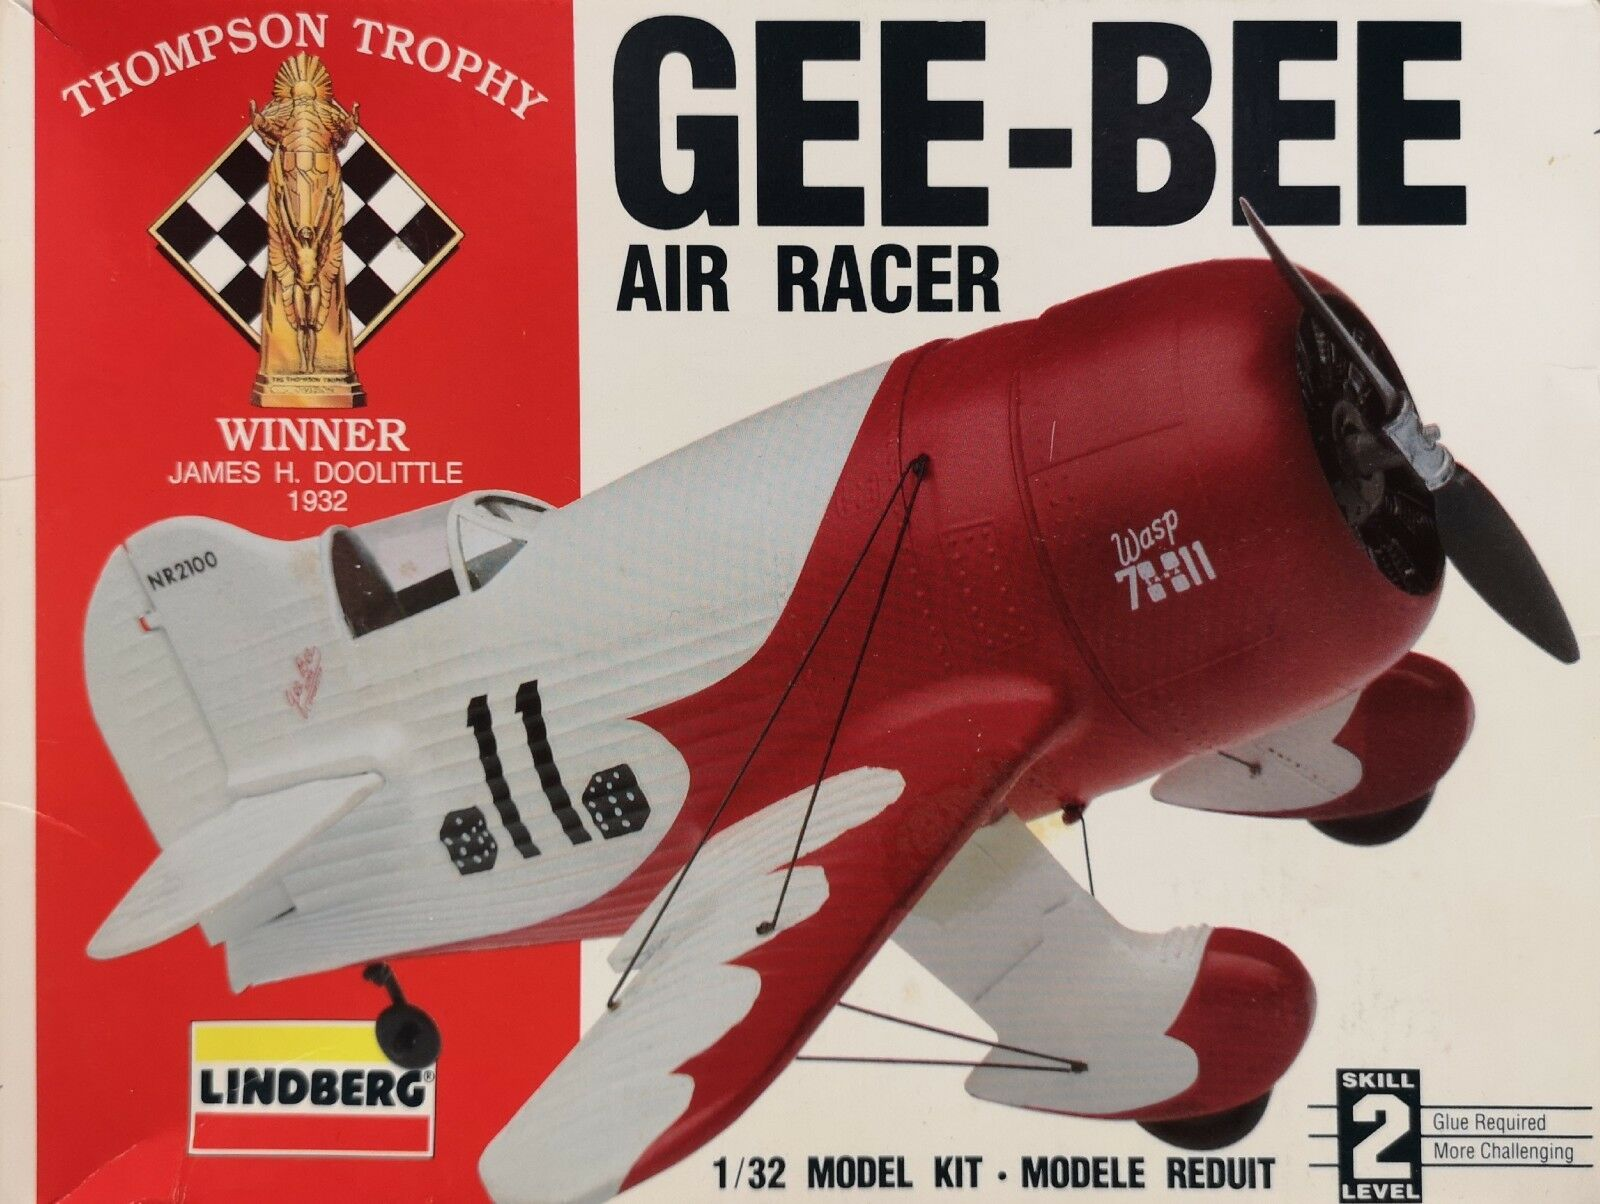 Lindberg Gee Bee Air Racer Thompson Trophy 1 32 Scale Plastic Model Kit.